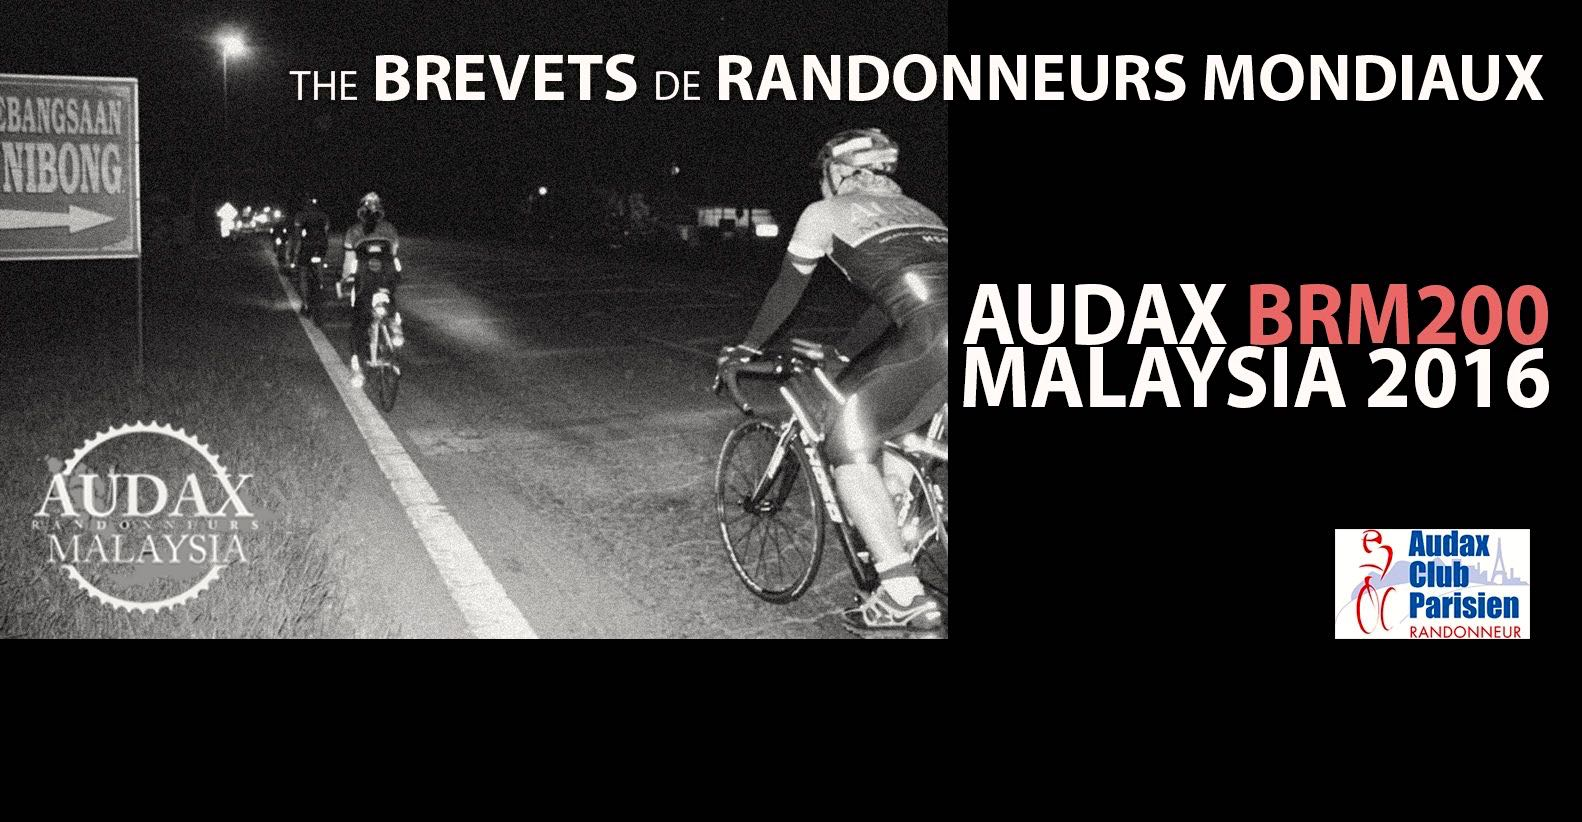 Audax BRM 200 Malaysia 2016 Banner